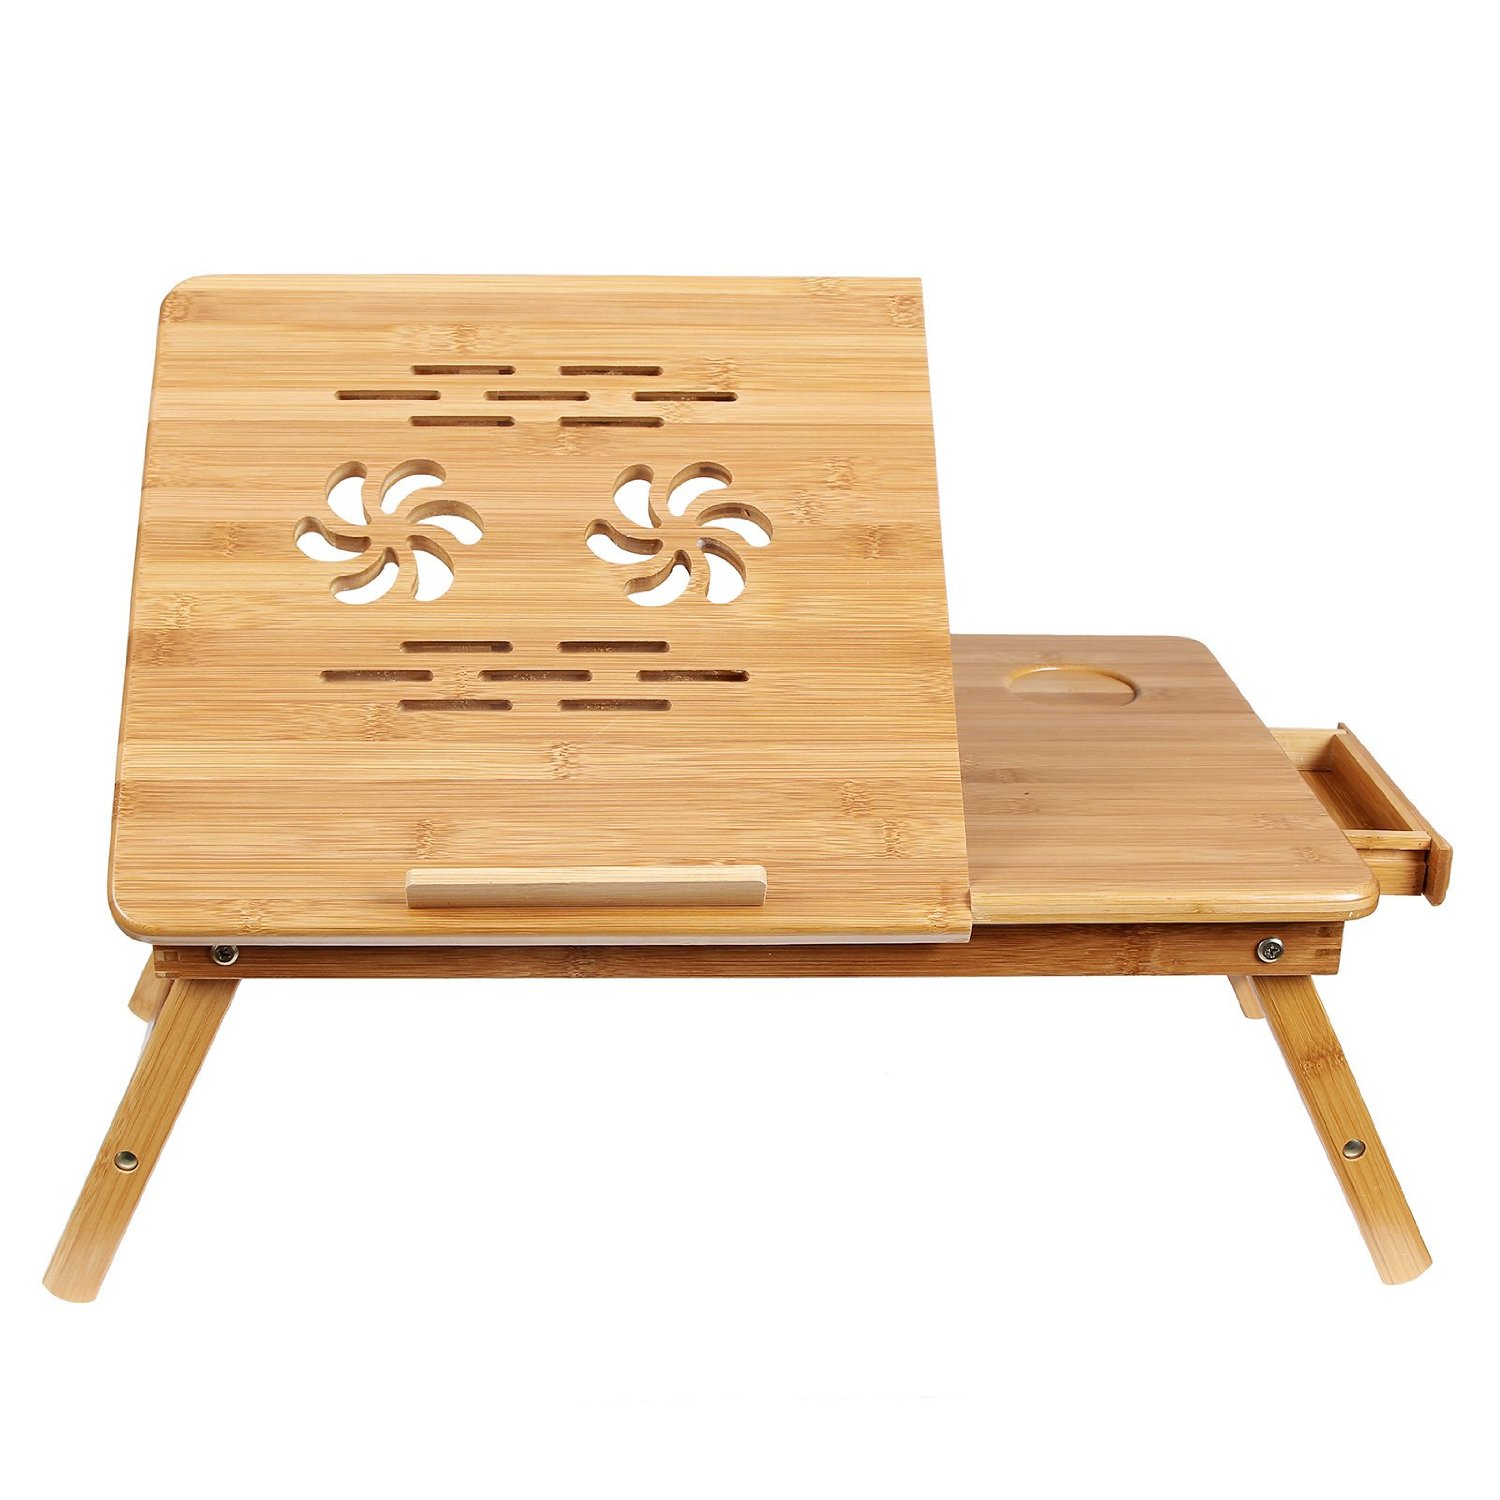 Foldable laptop breakfast table for her anniversary gift